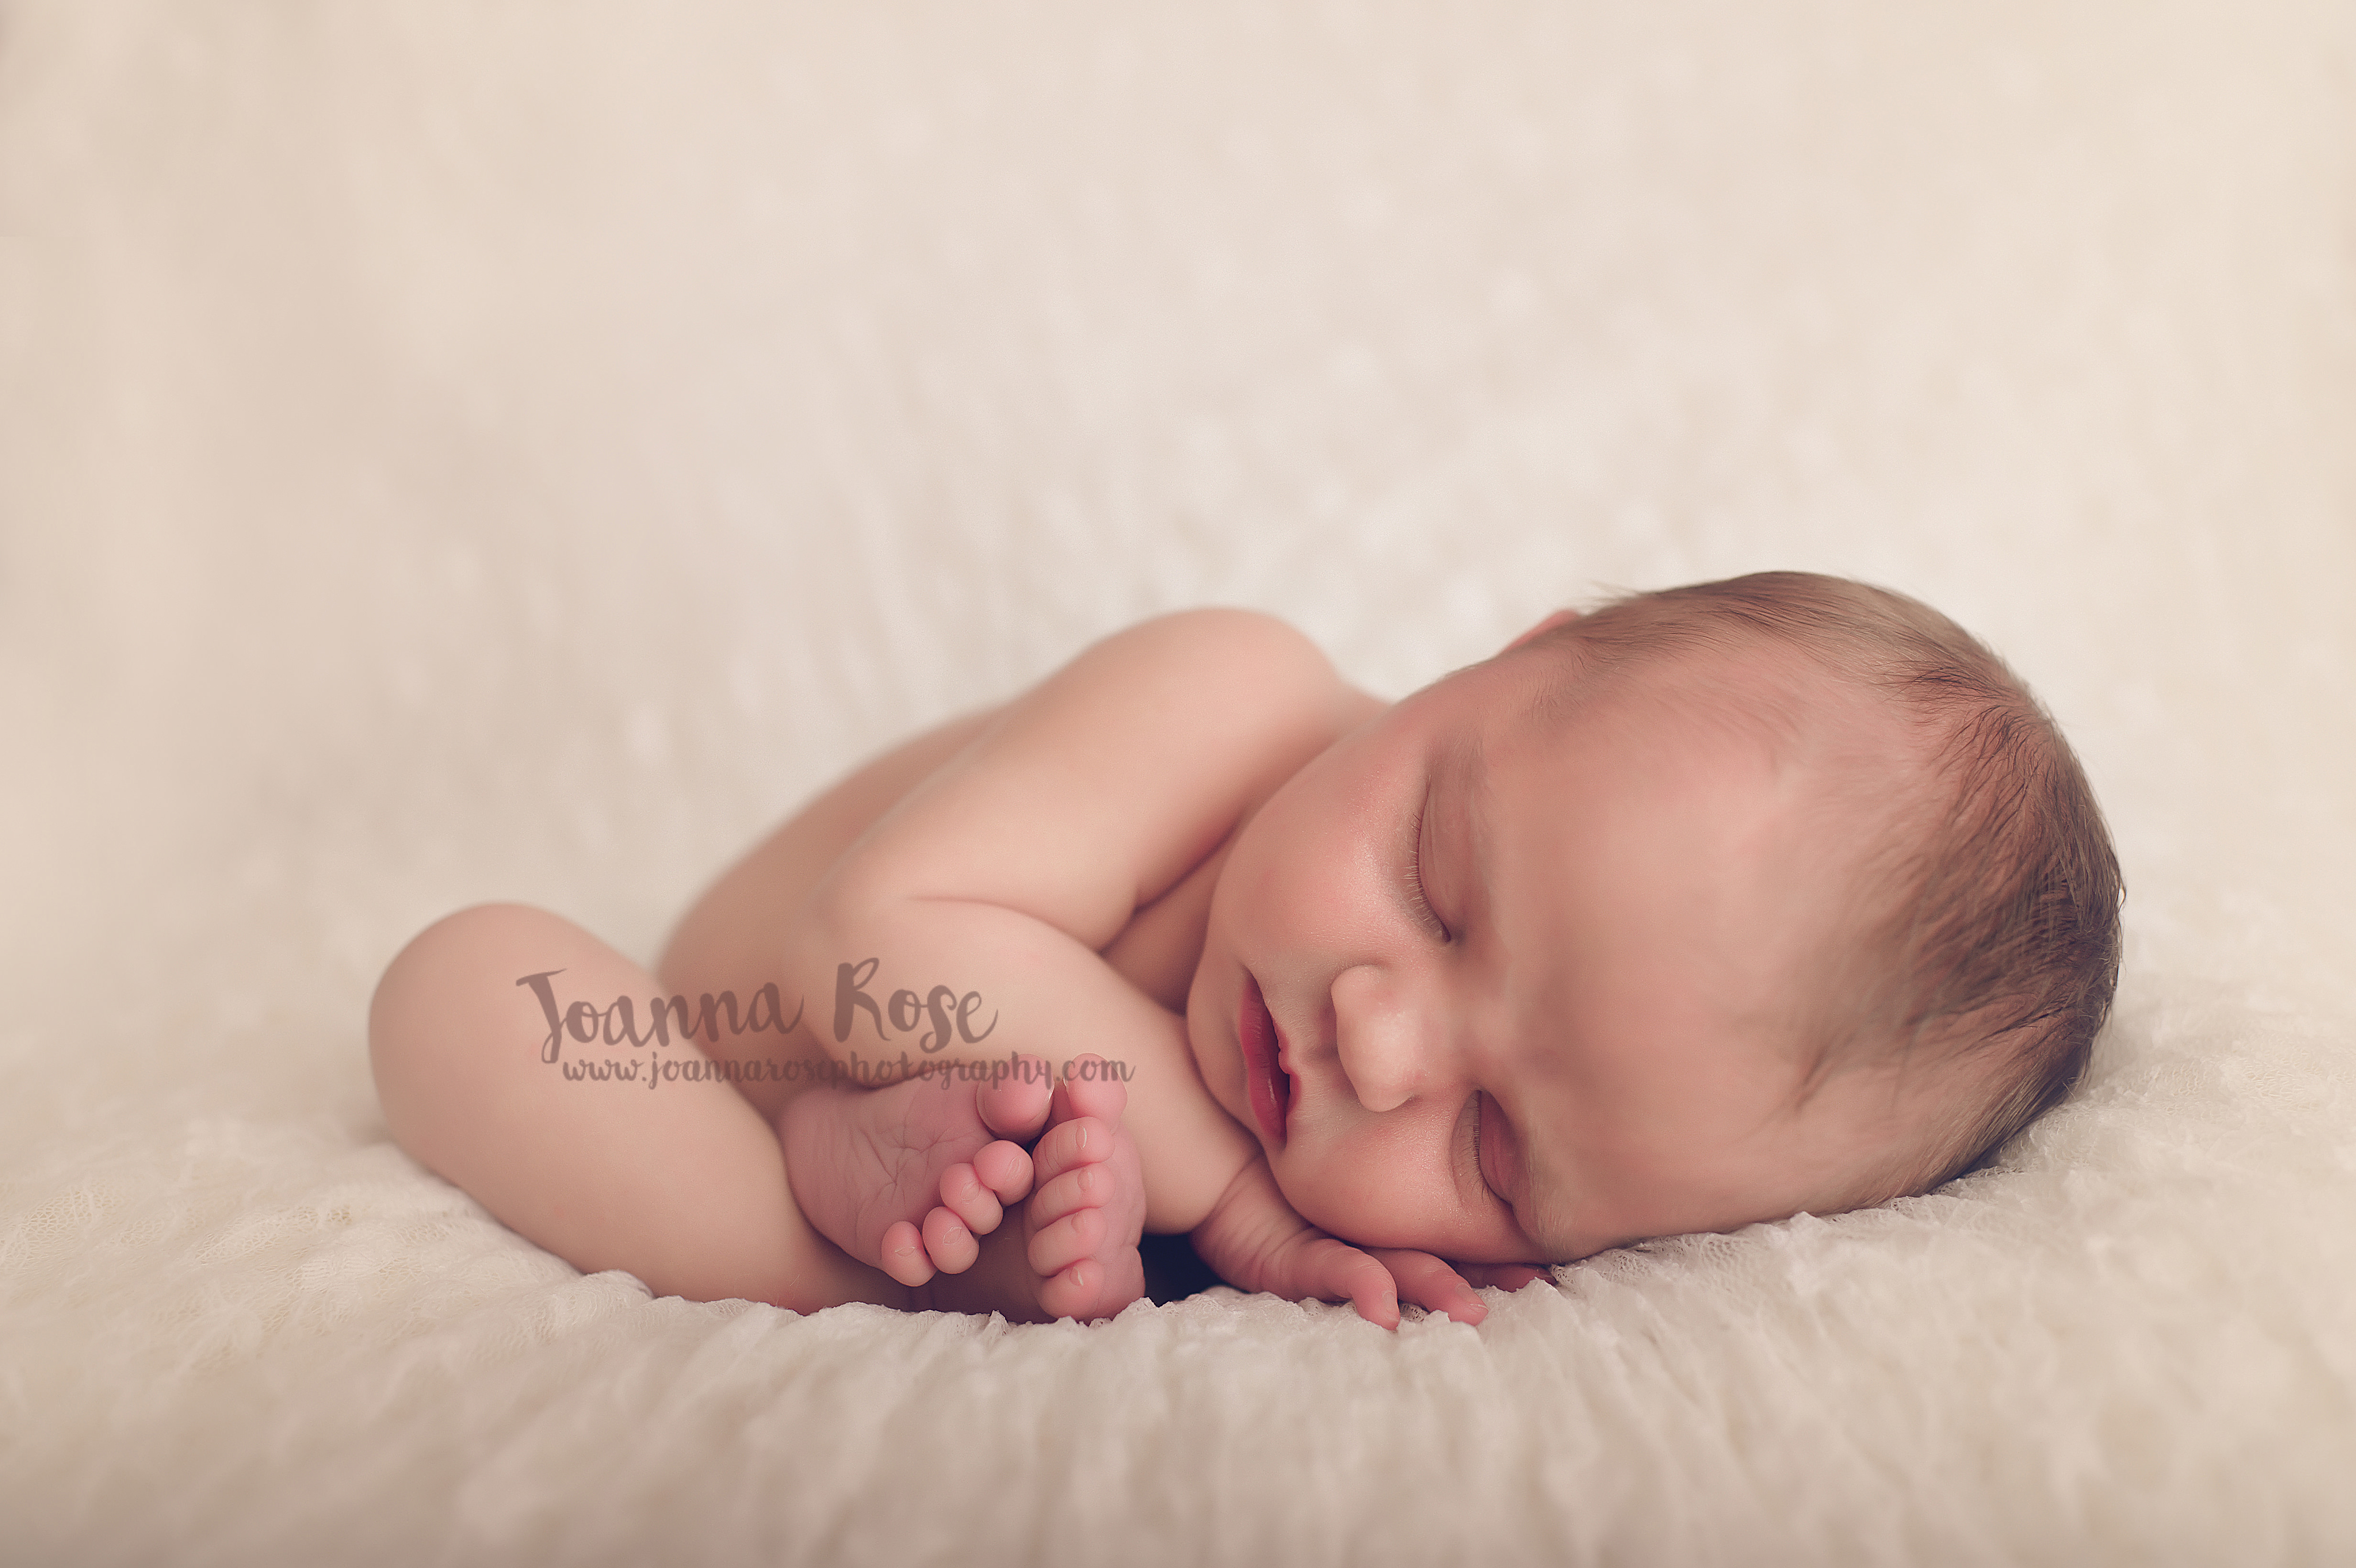 Newborn Baby Photography Liverpool & Liverpool Newborn Baby Photographer & Family Photography Liverpool & Liverpool Family Photographer & Joanna Rose Photography